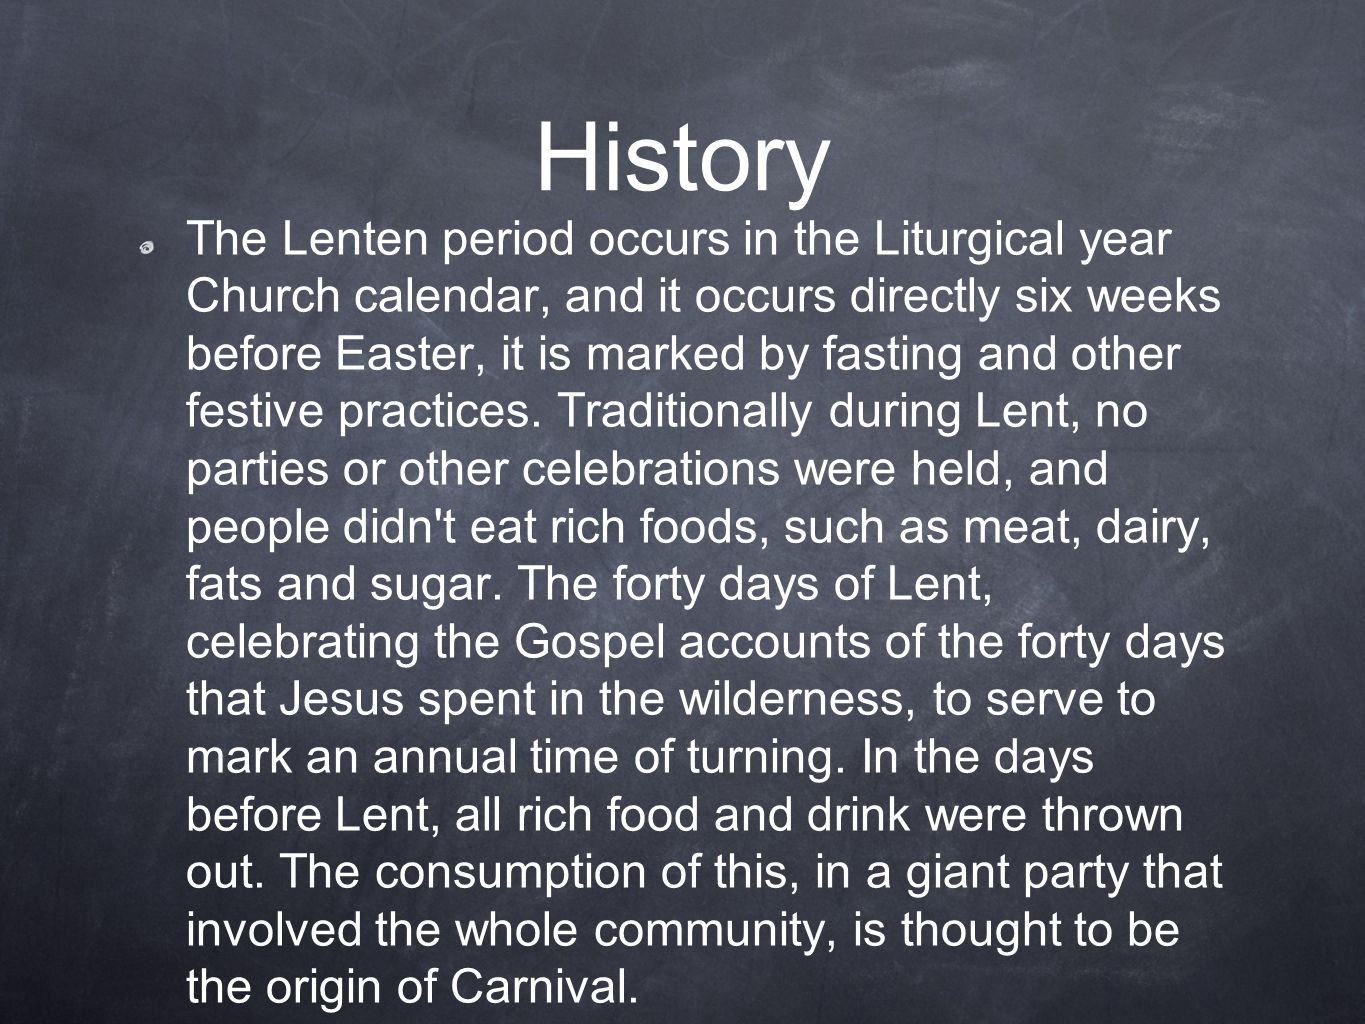 History The Lenten period occurs in the Liturgical year Church calendar, and it occurs directly six weeks before Easter, it is marked by fasting and other festive practices.